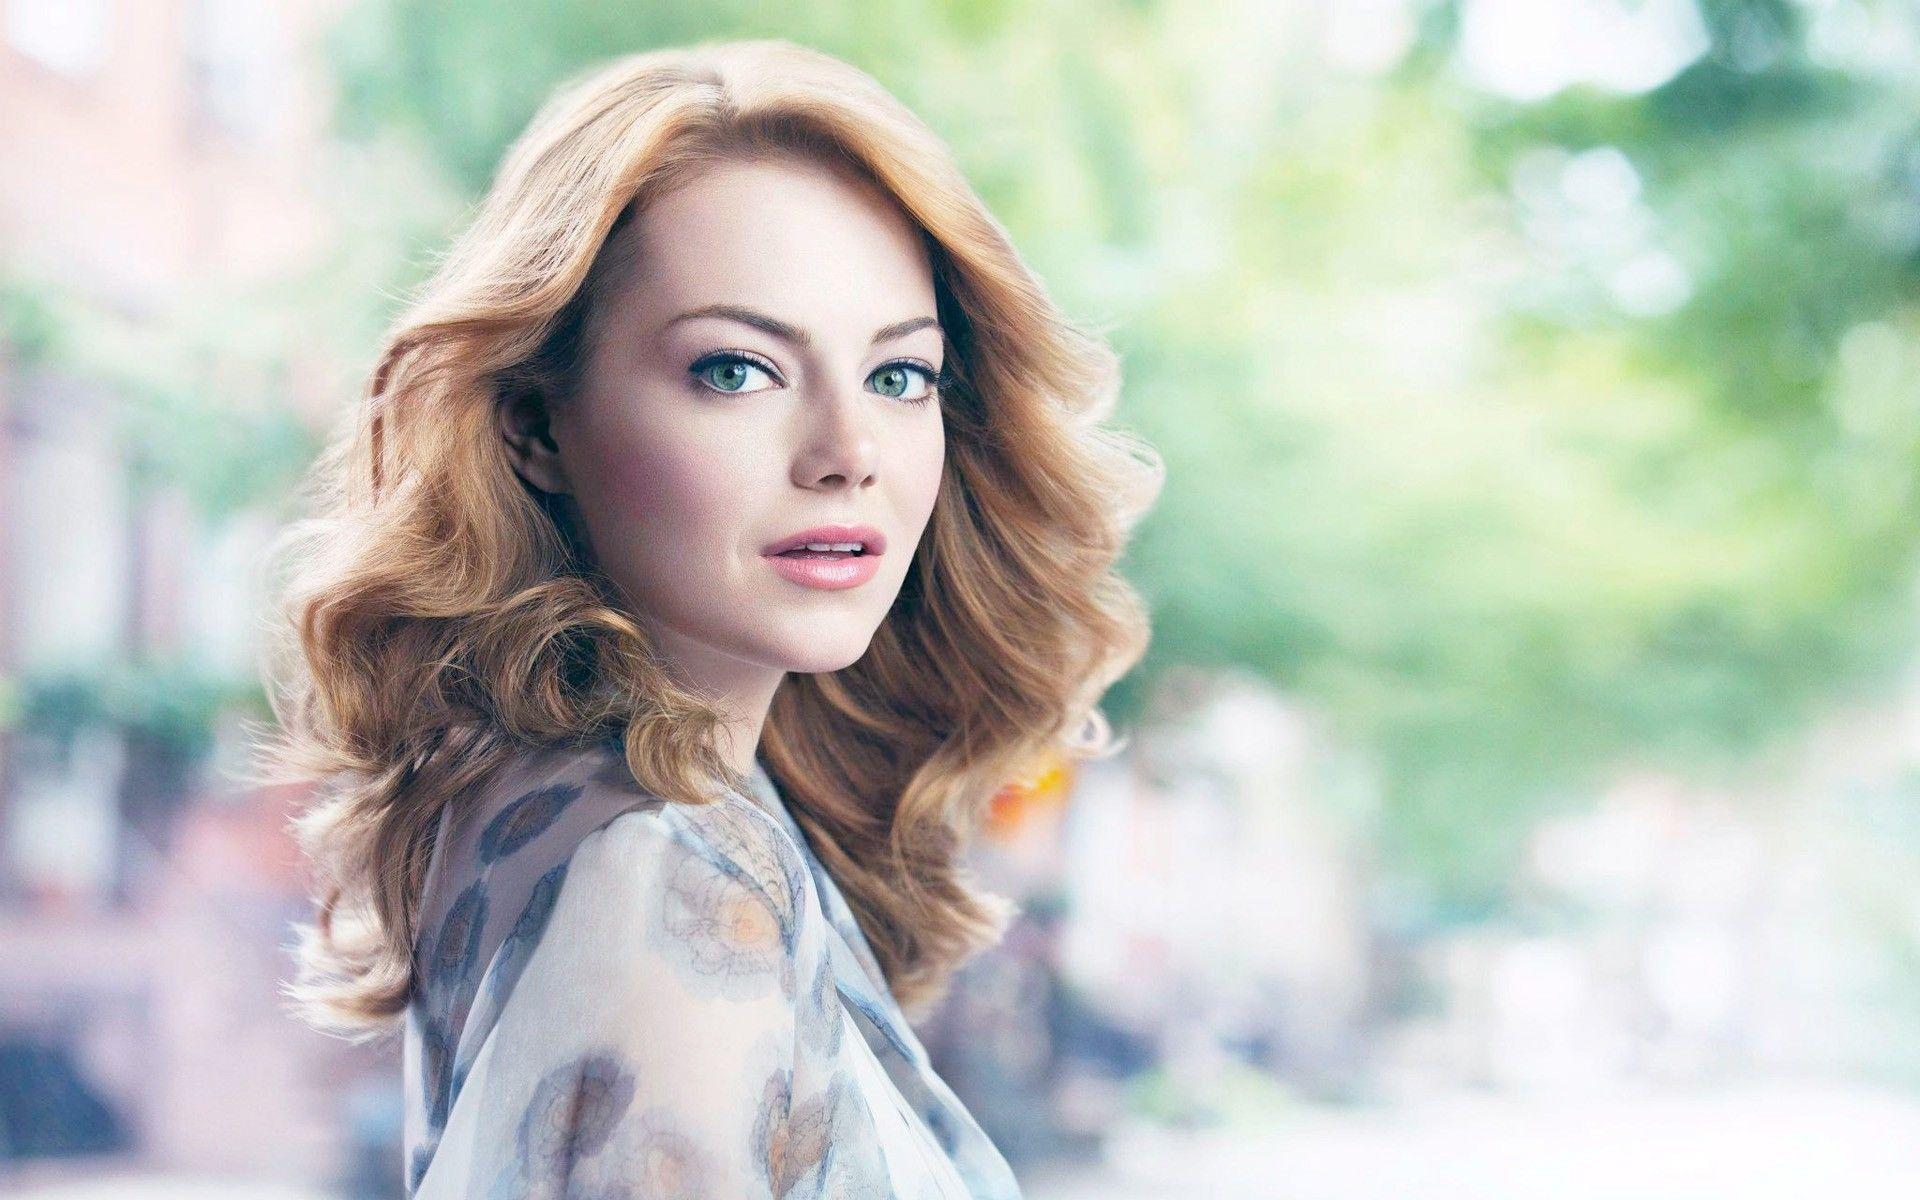 356 Emma Stone HD Wallpapers